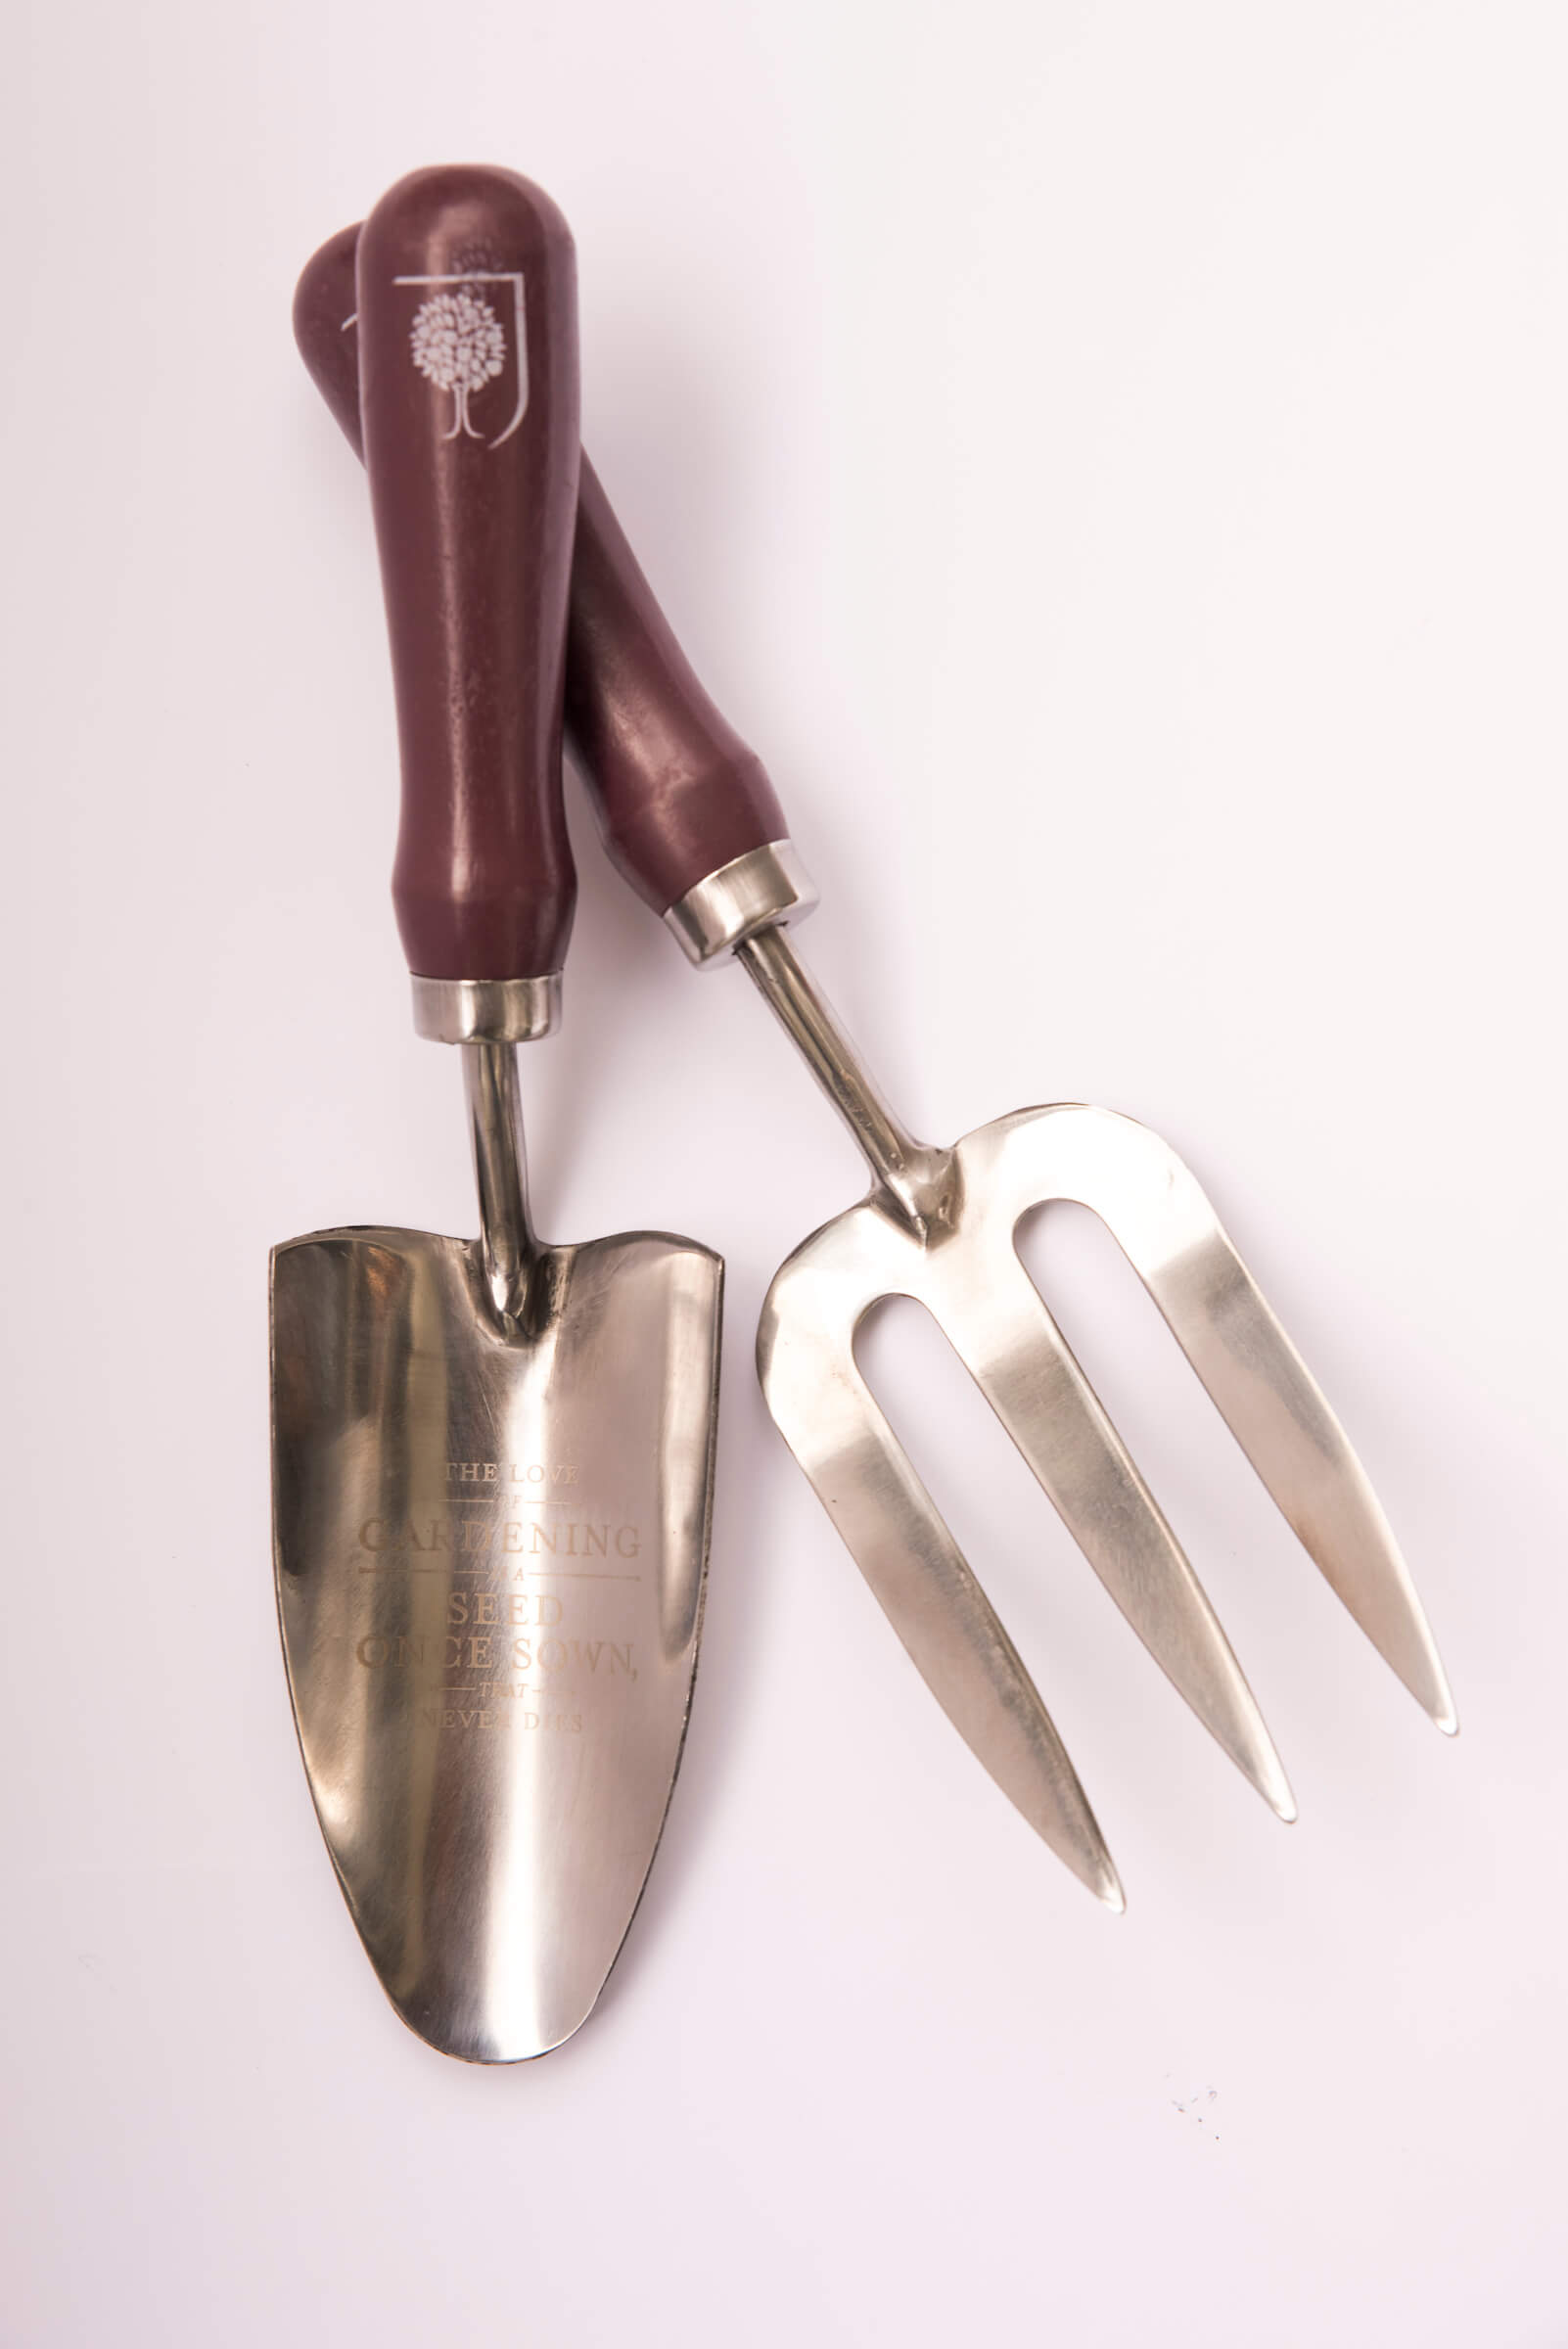 Image of Trowel and fork